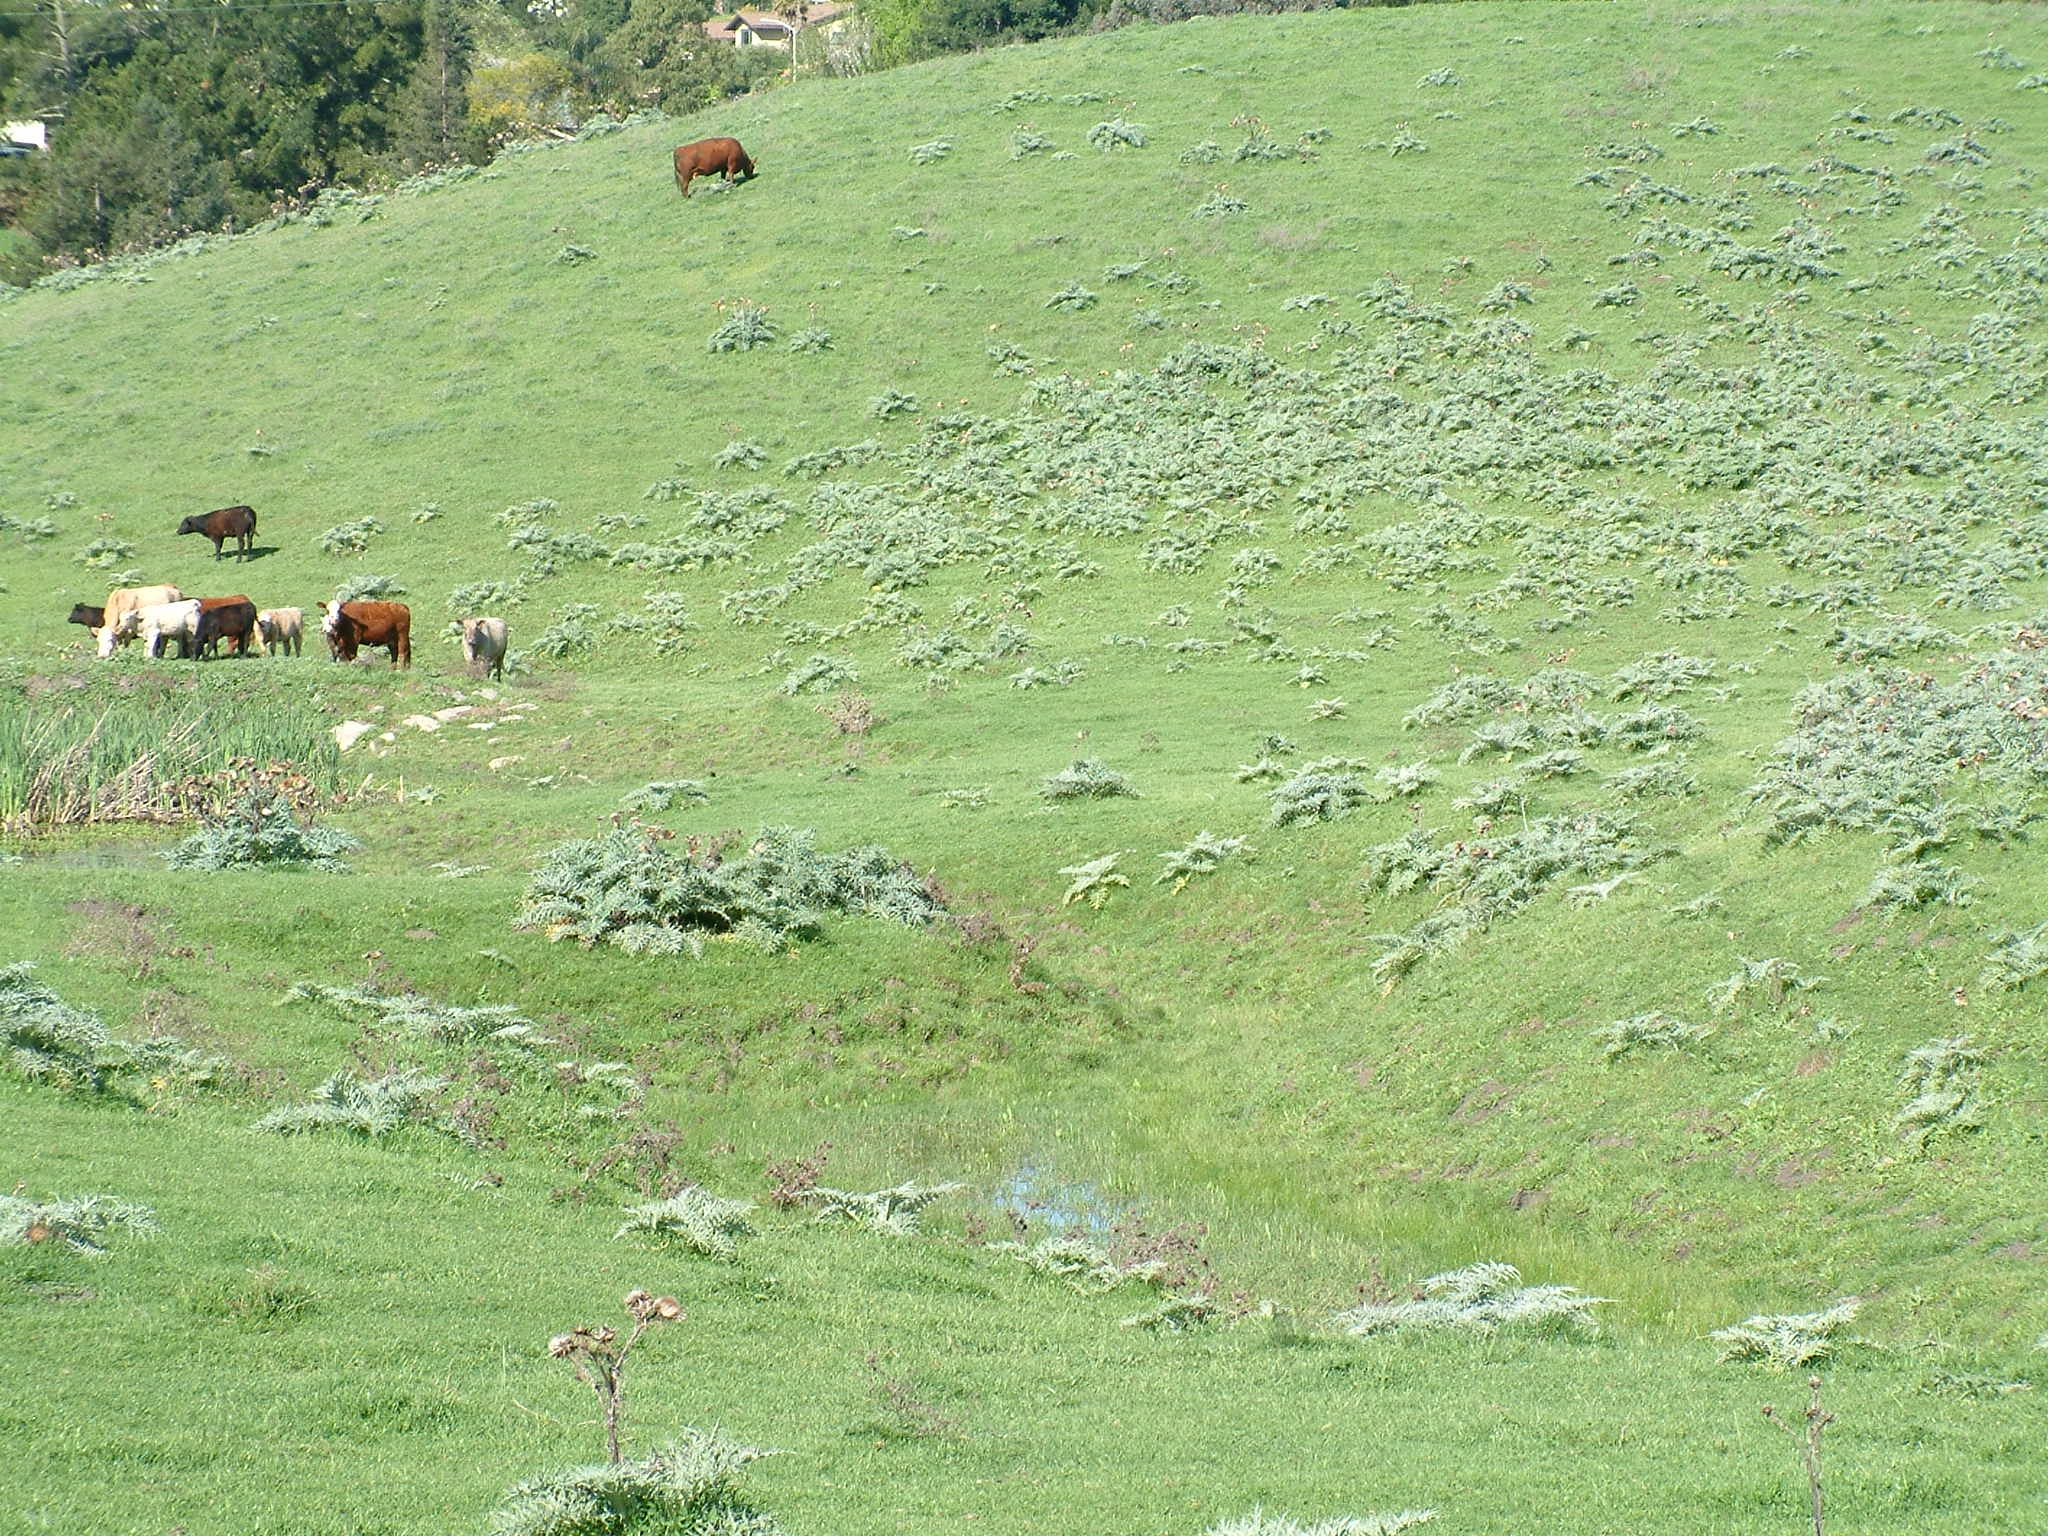 Artichoke thistle on a hill with livestock